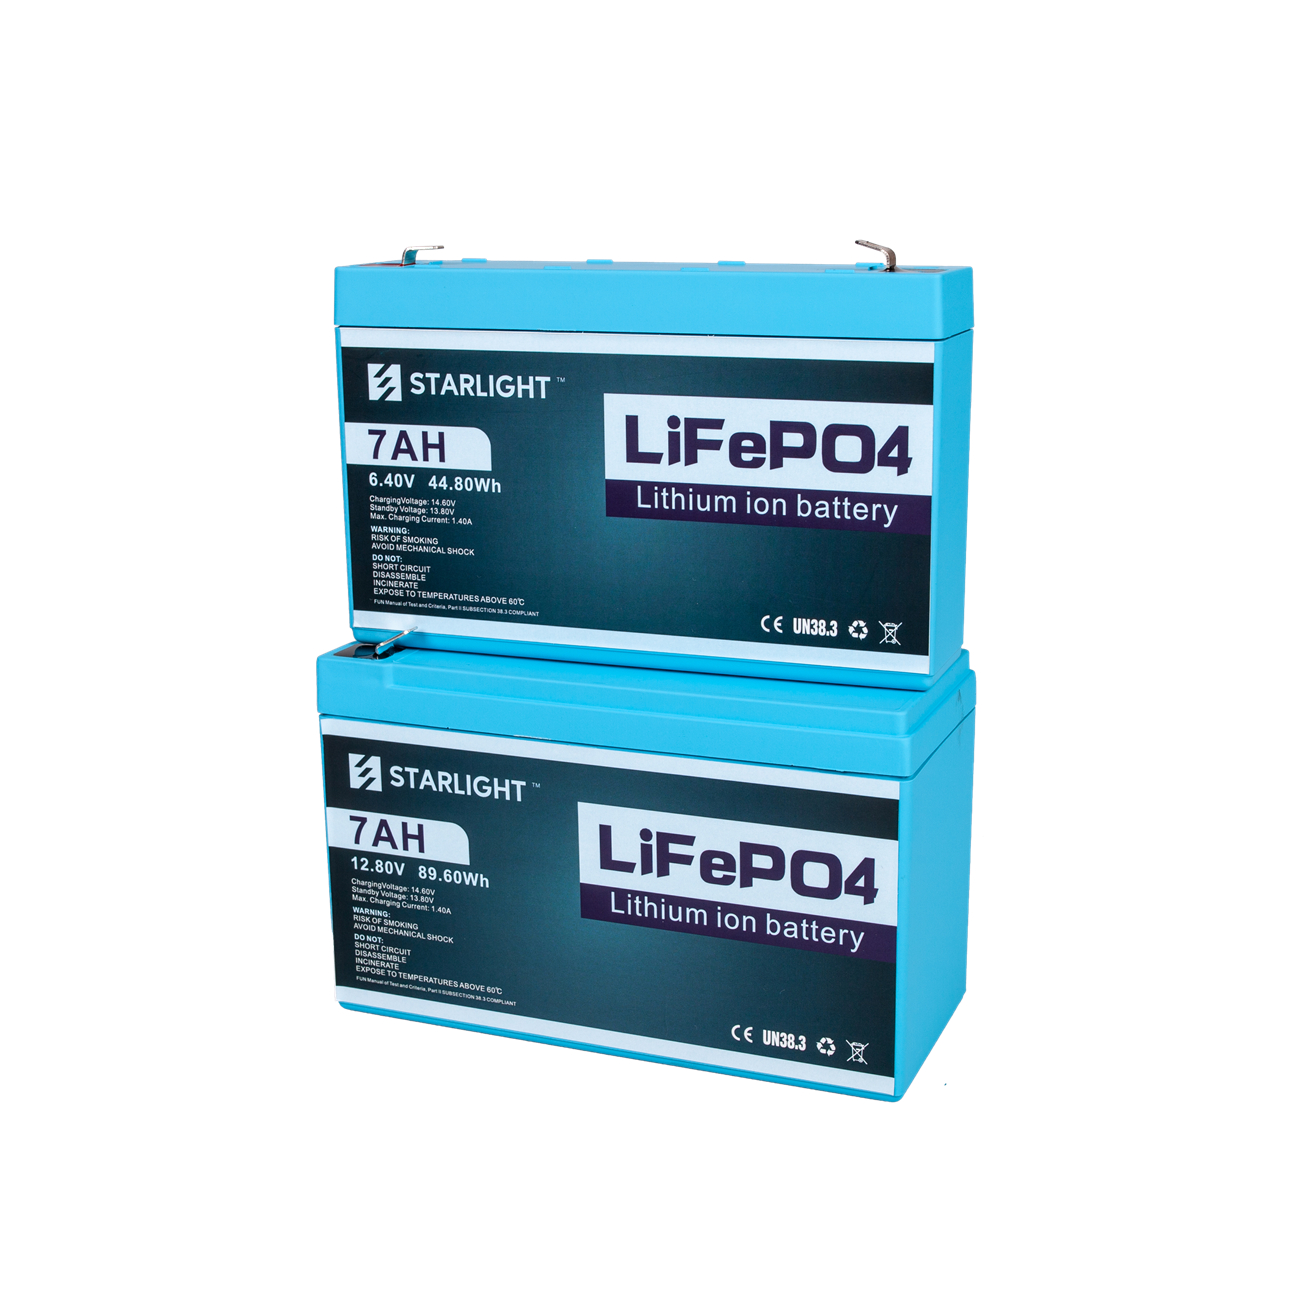 small battery lithium06-7ah